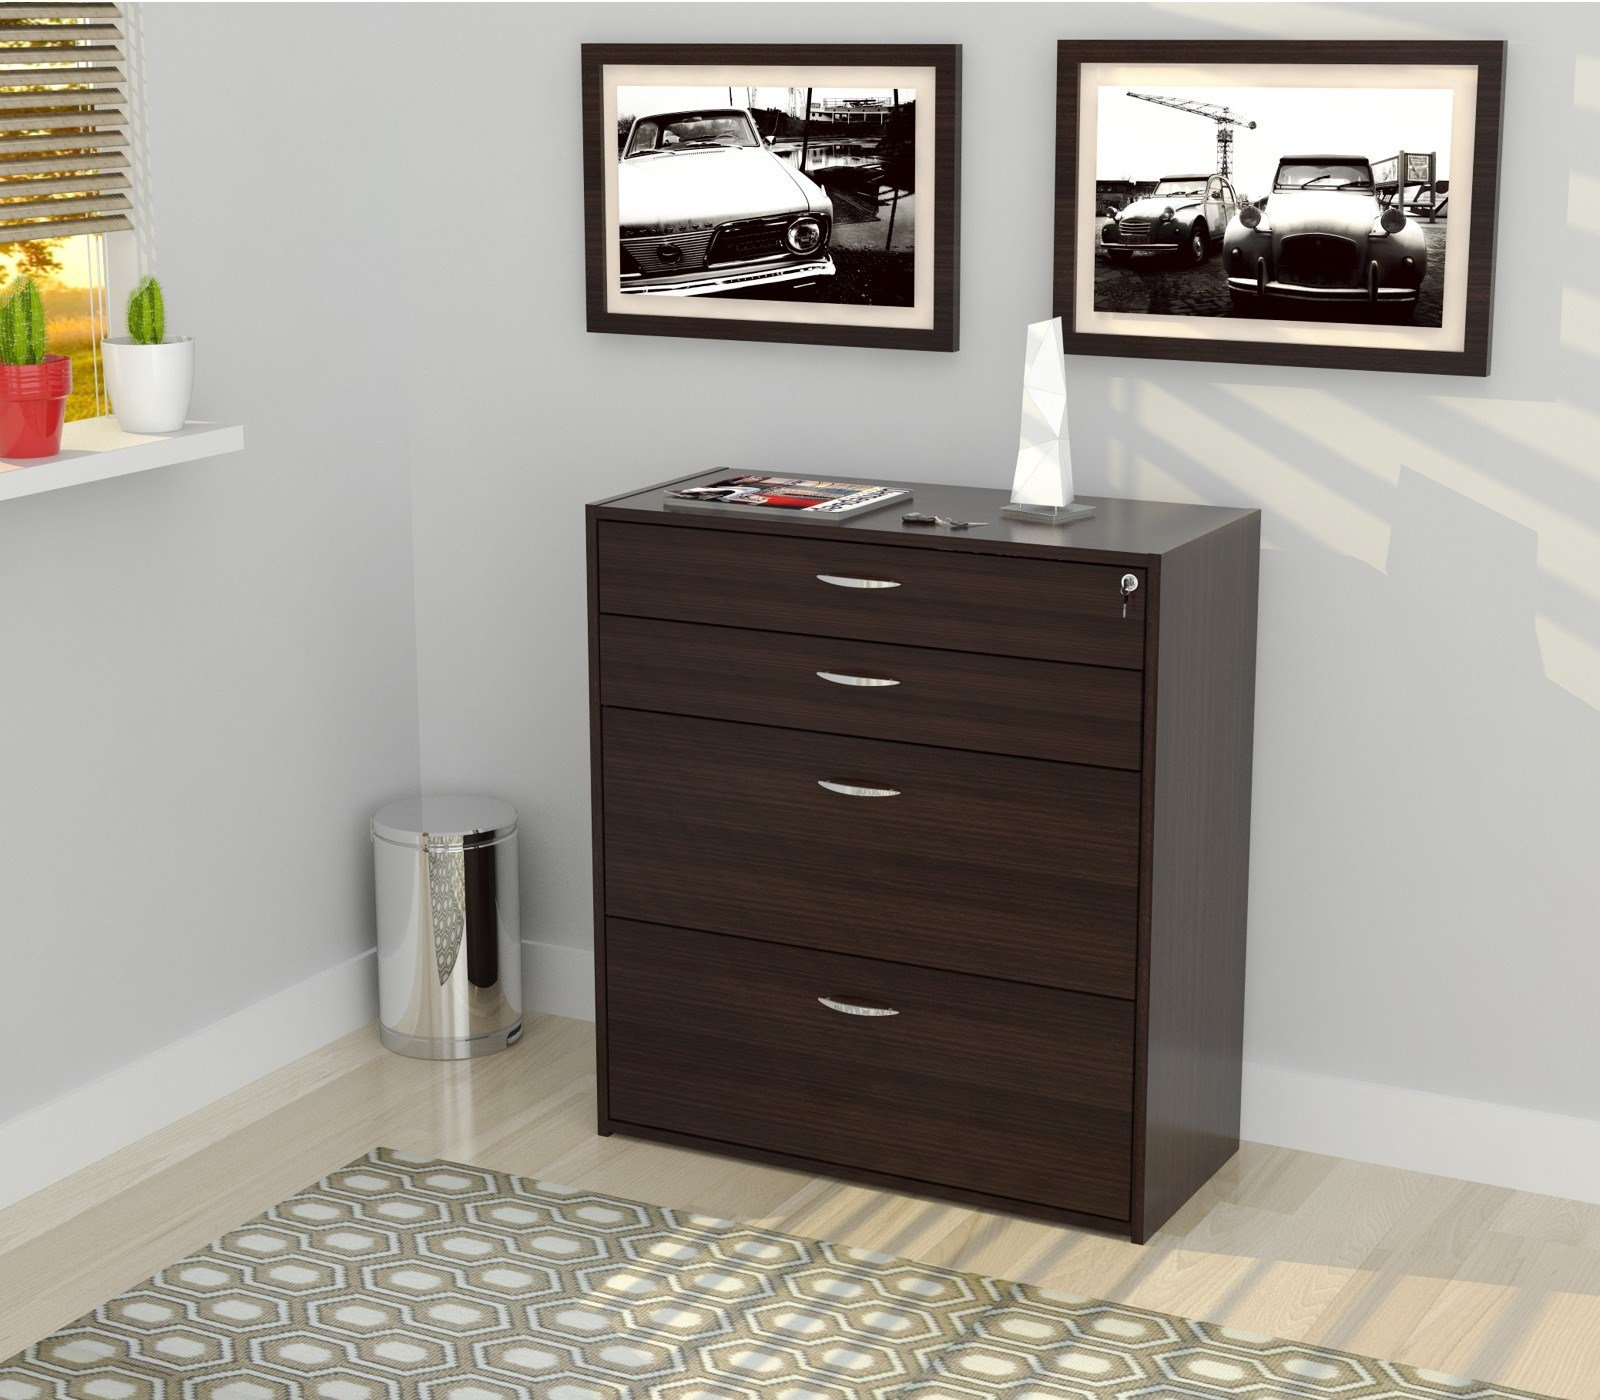 Inval America B2AR-2705 4 Drawer Storage/Filing Cabinet by Inval America (Image #2)